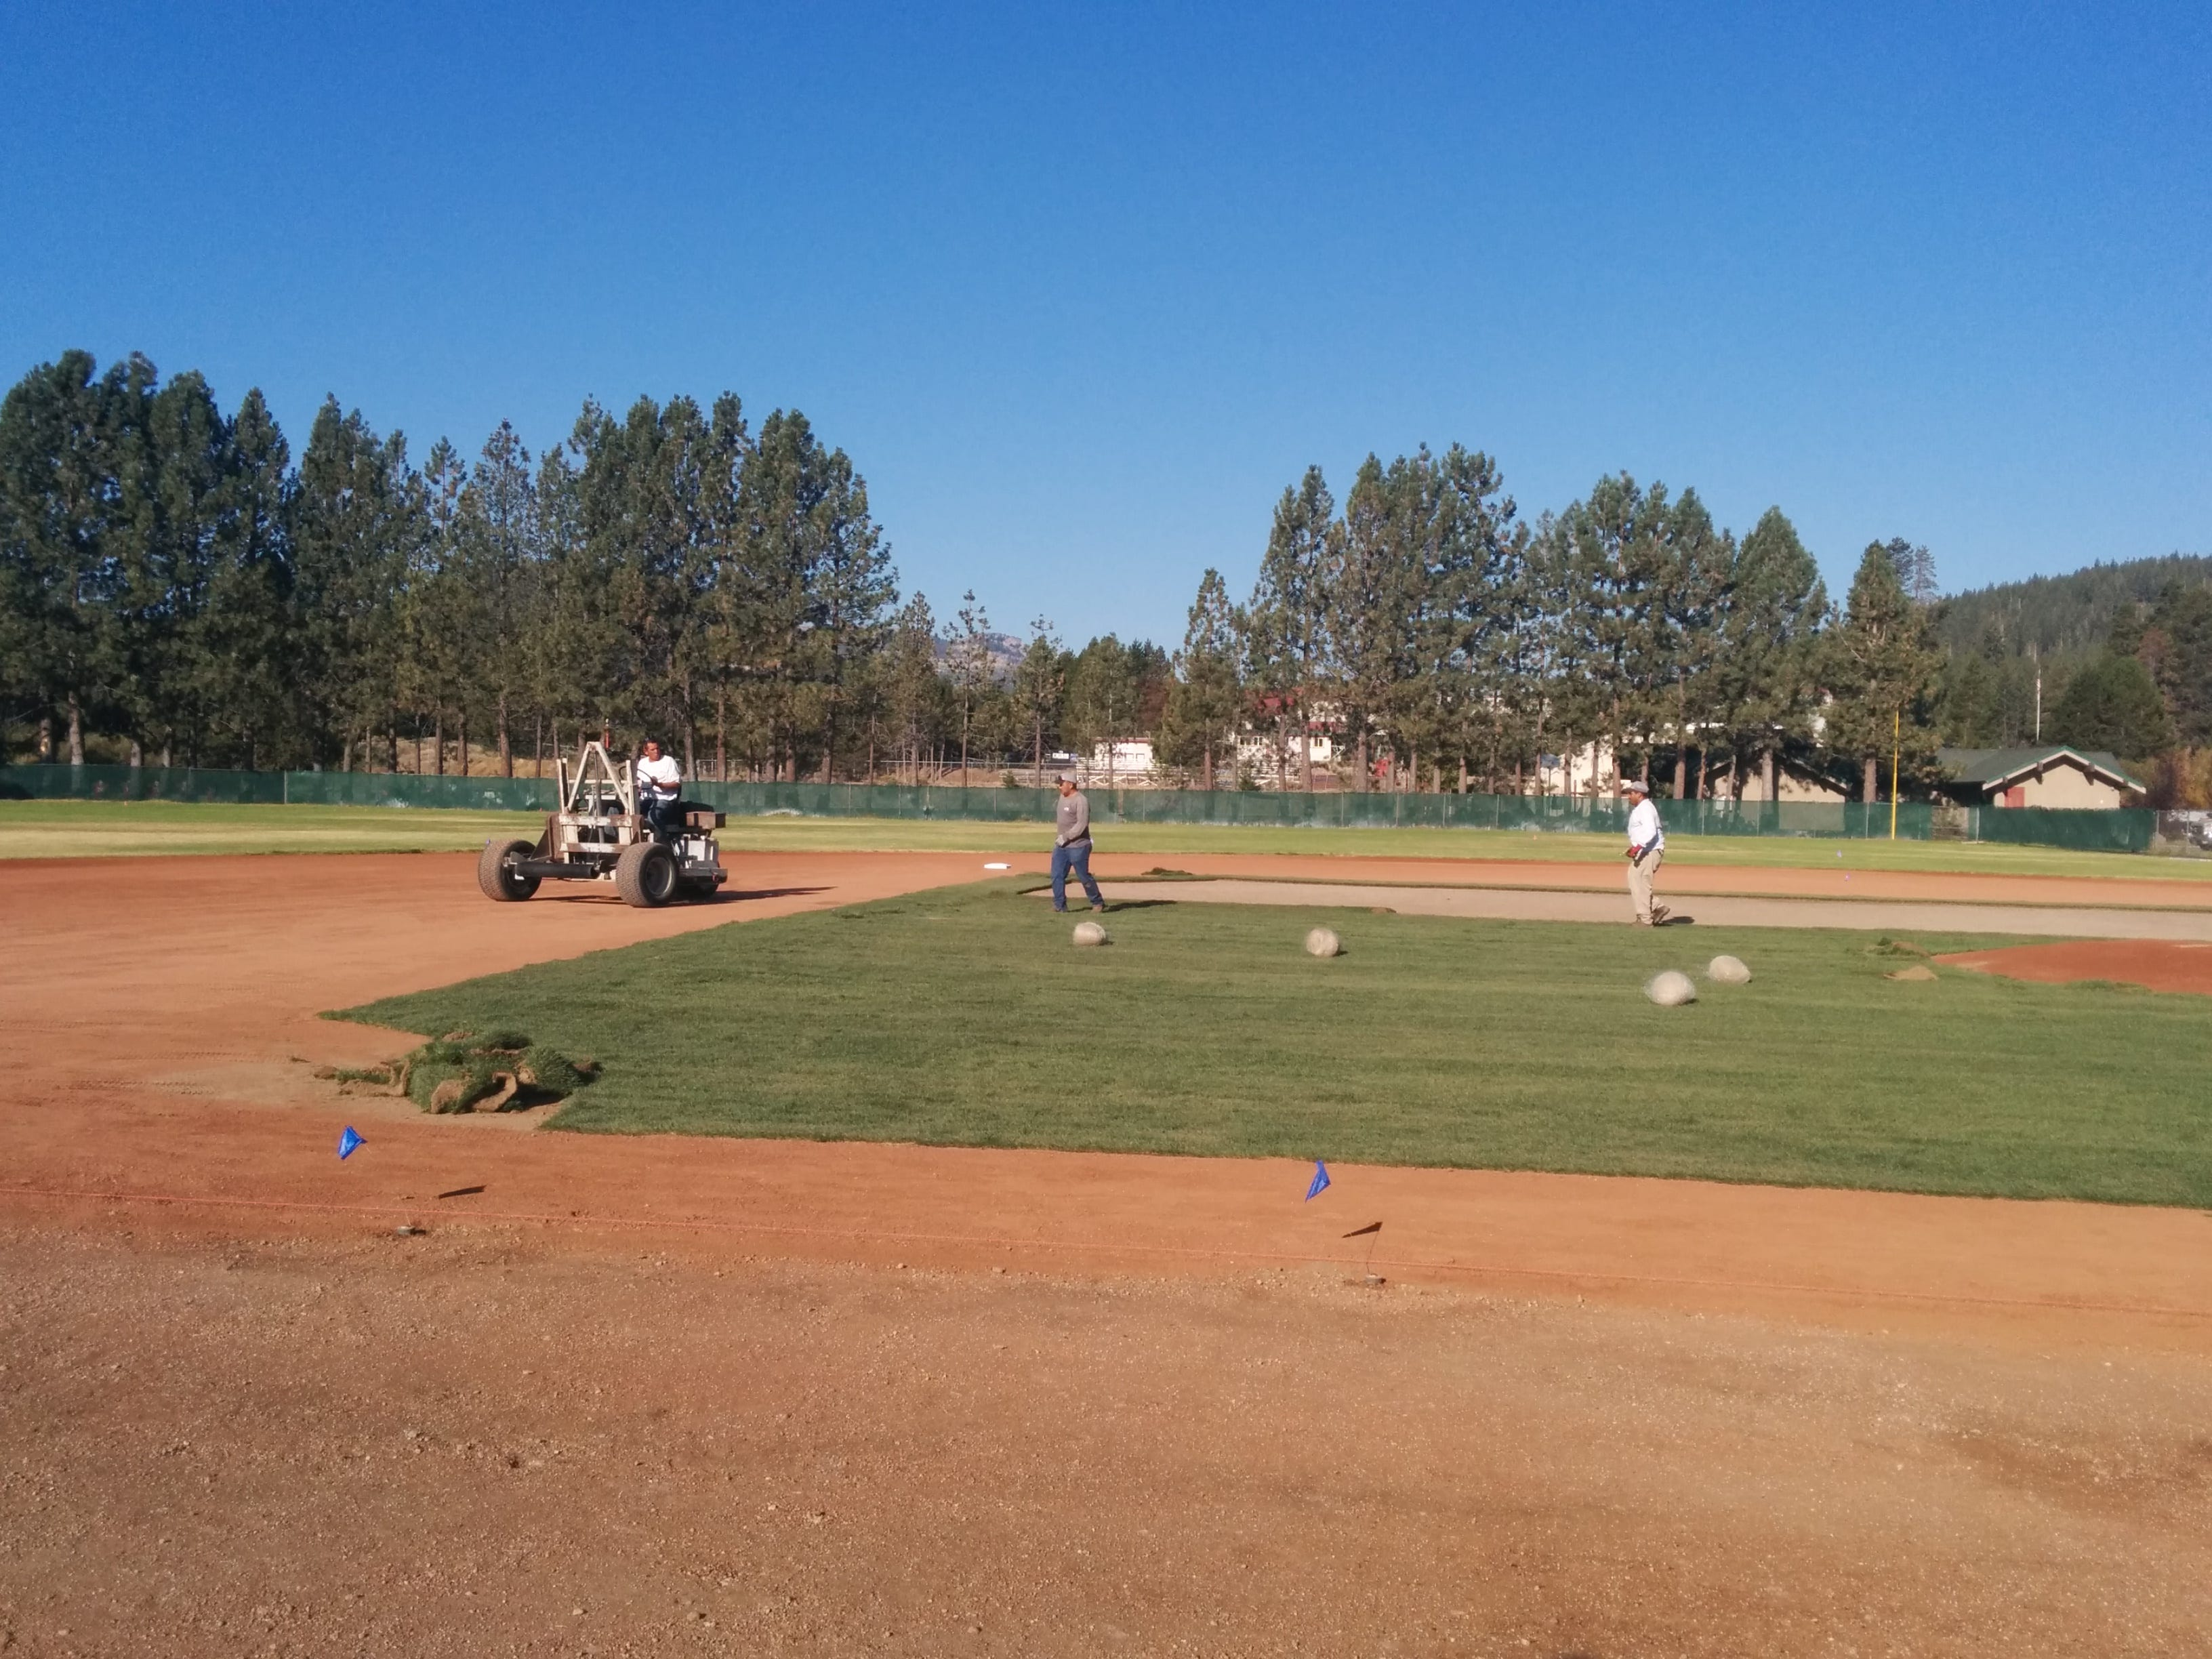 Workers prepare the infield at the Truckee basbeall field.